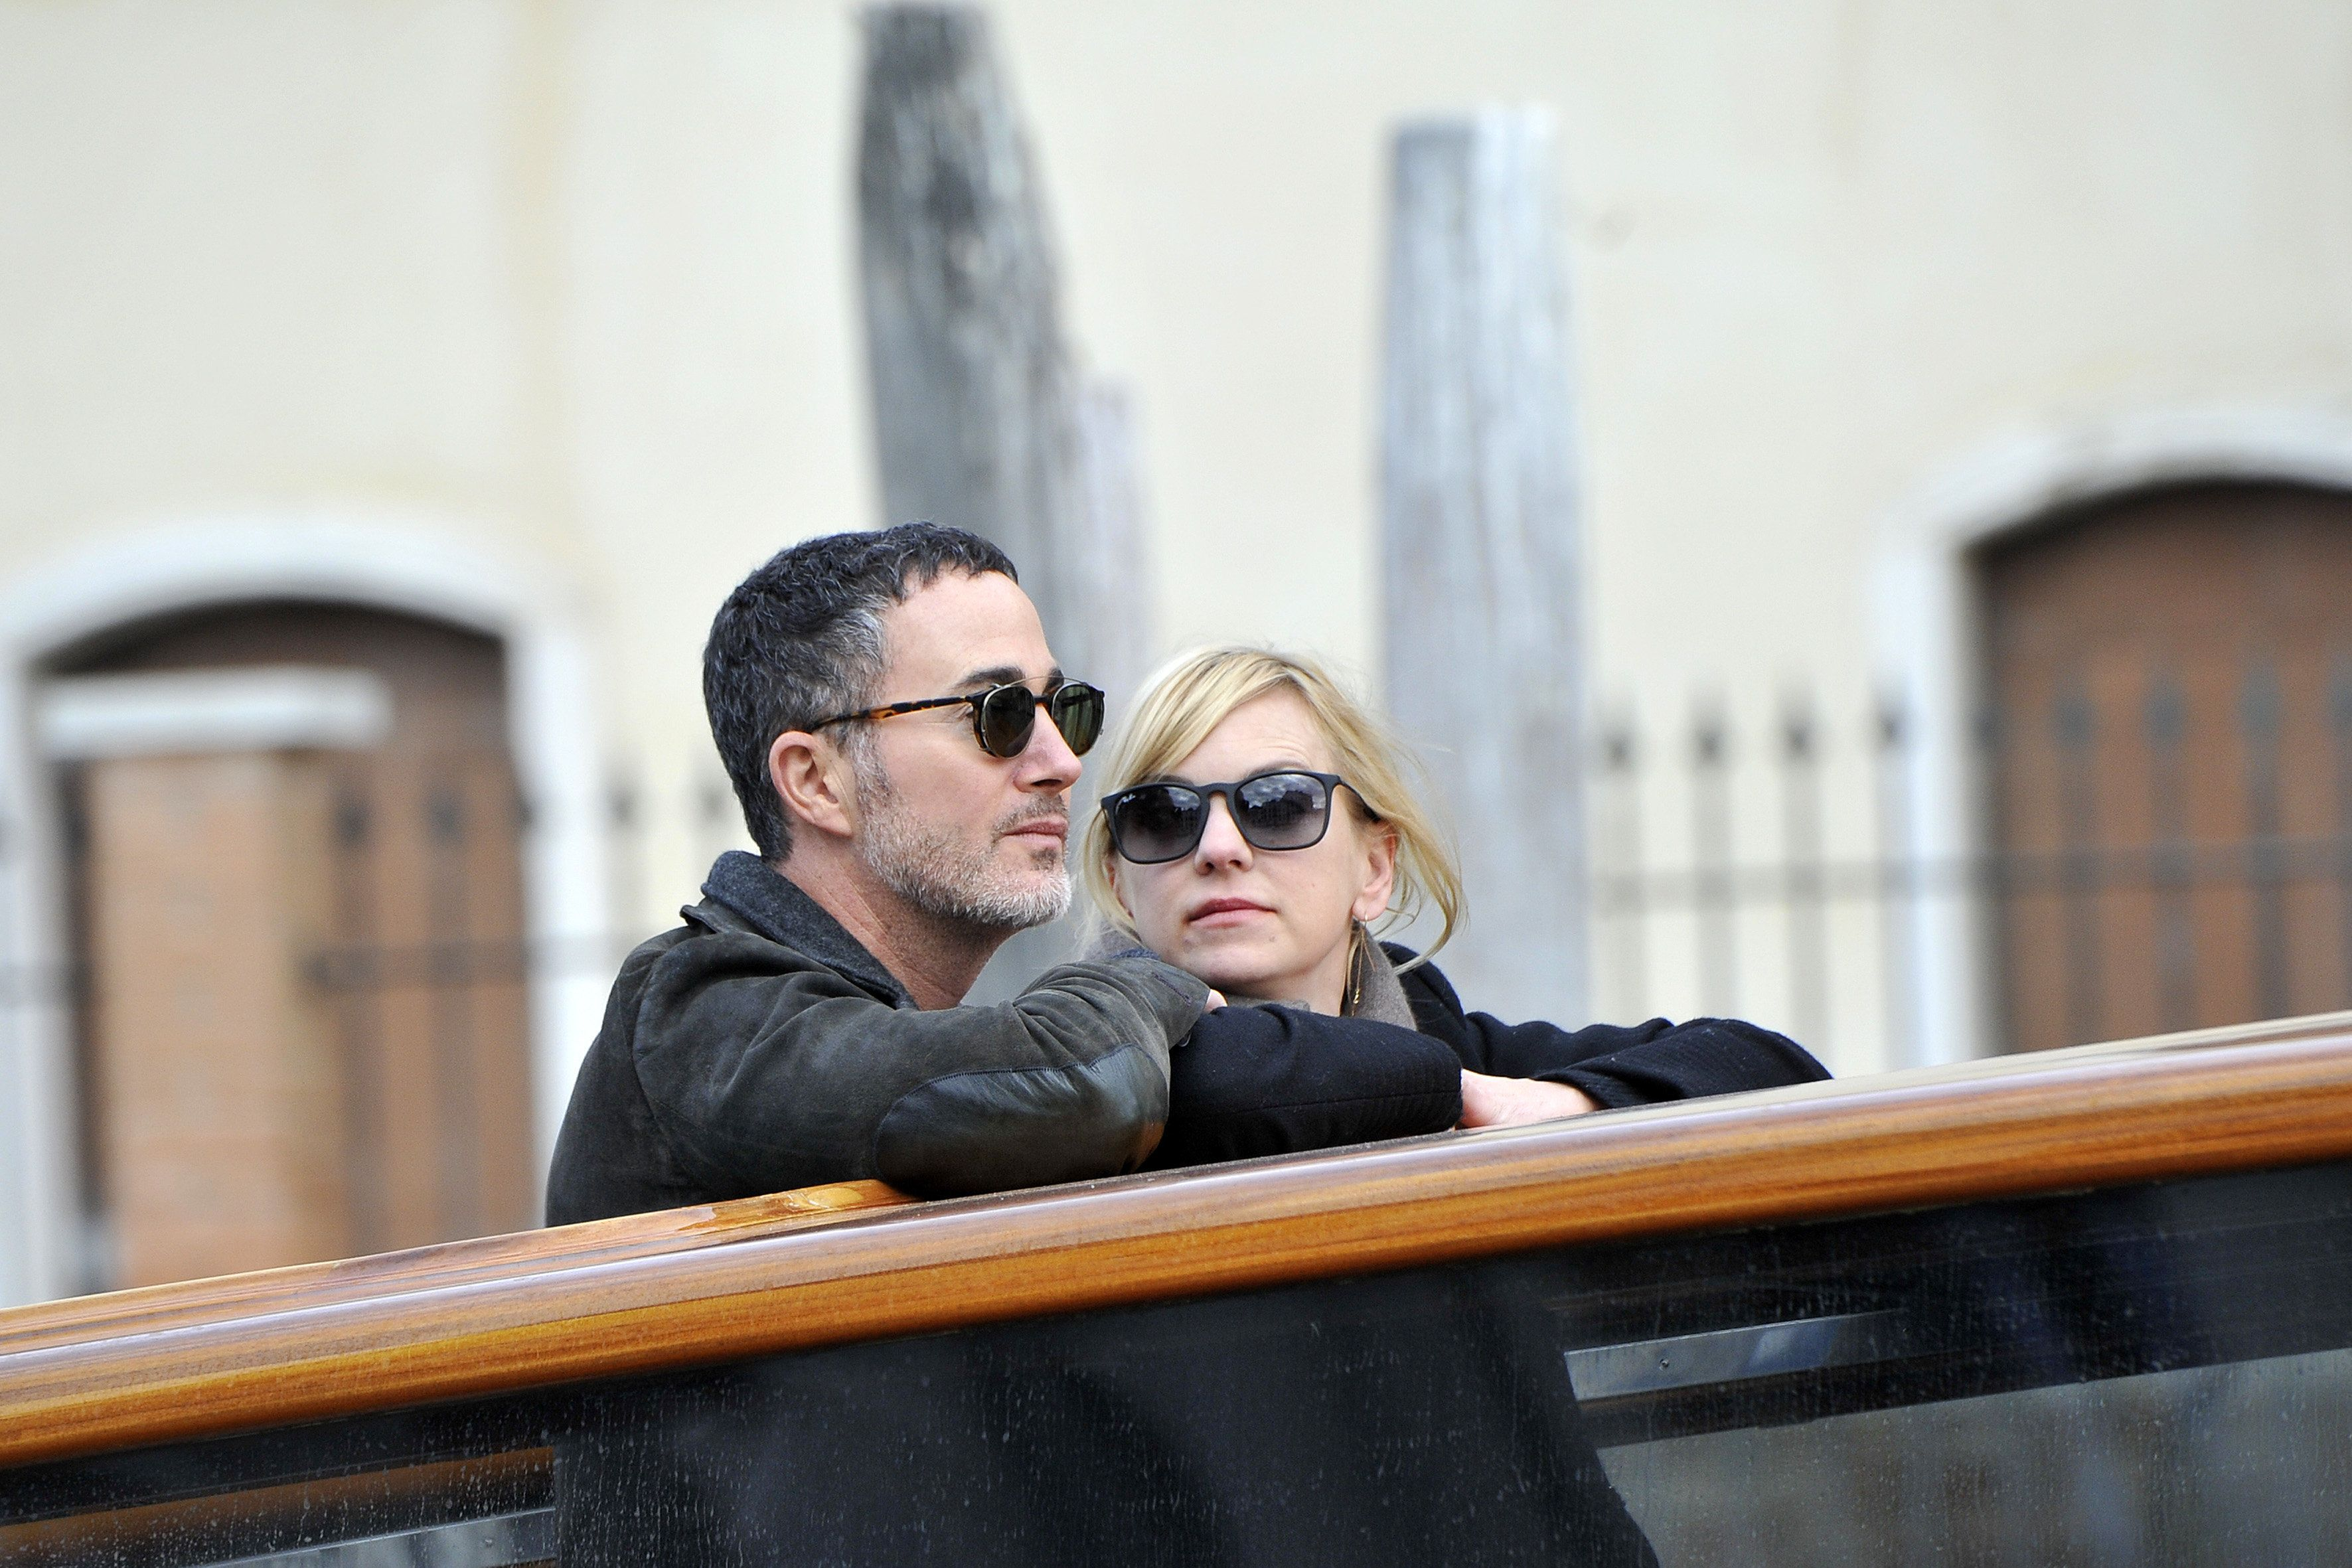 Anna Faris and new boyfriend Michael Barrett are seen during a romantic taxi boat ride in Venice, Italy. 